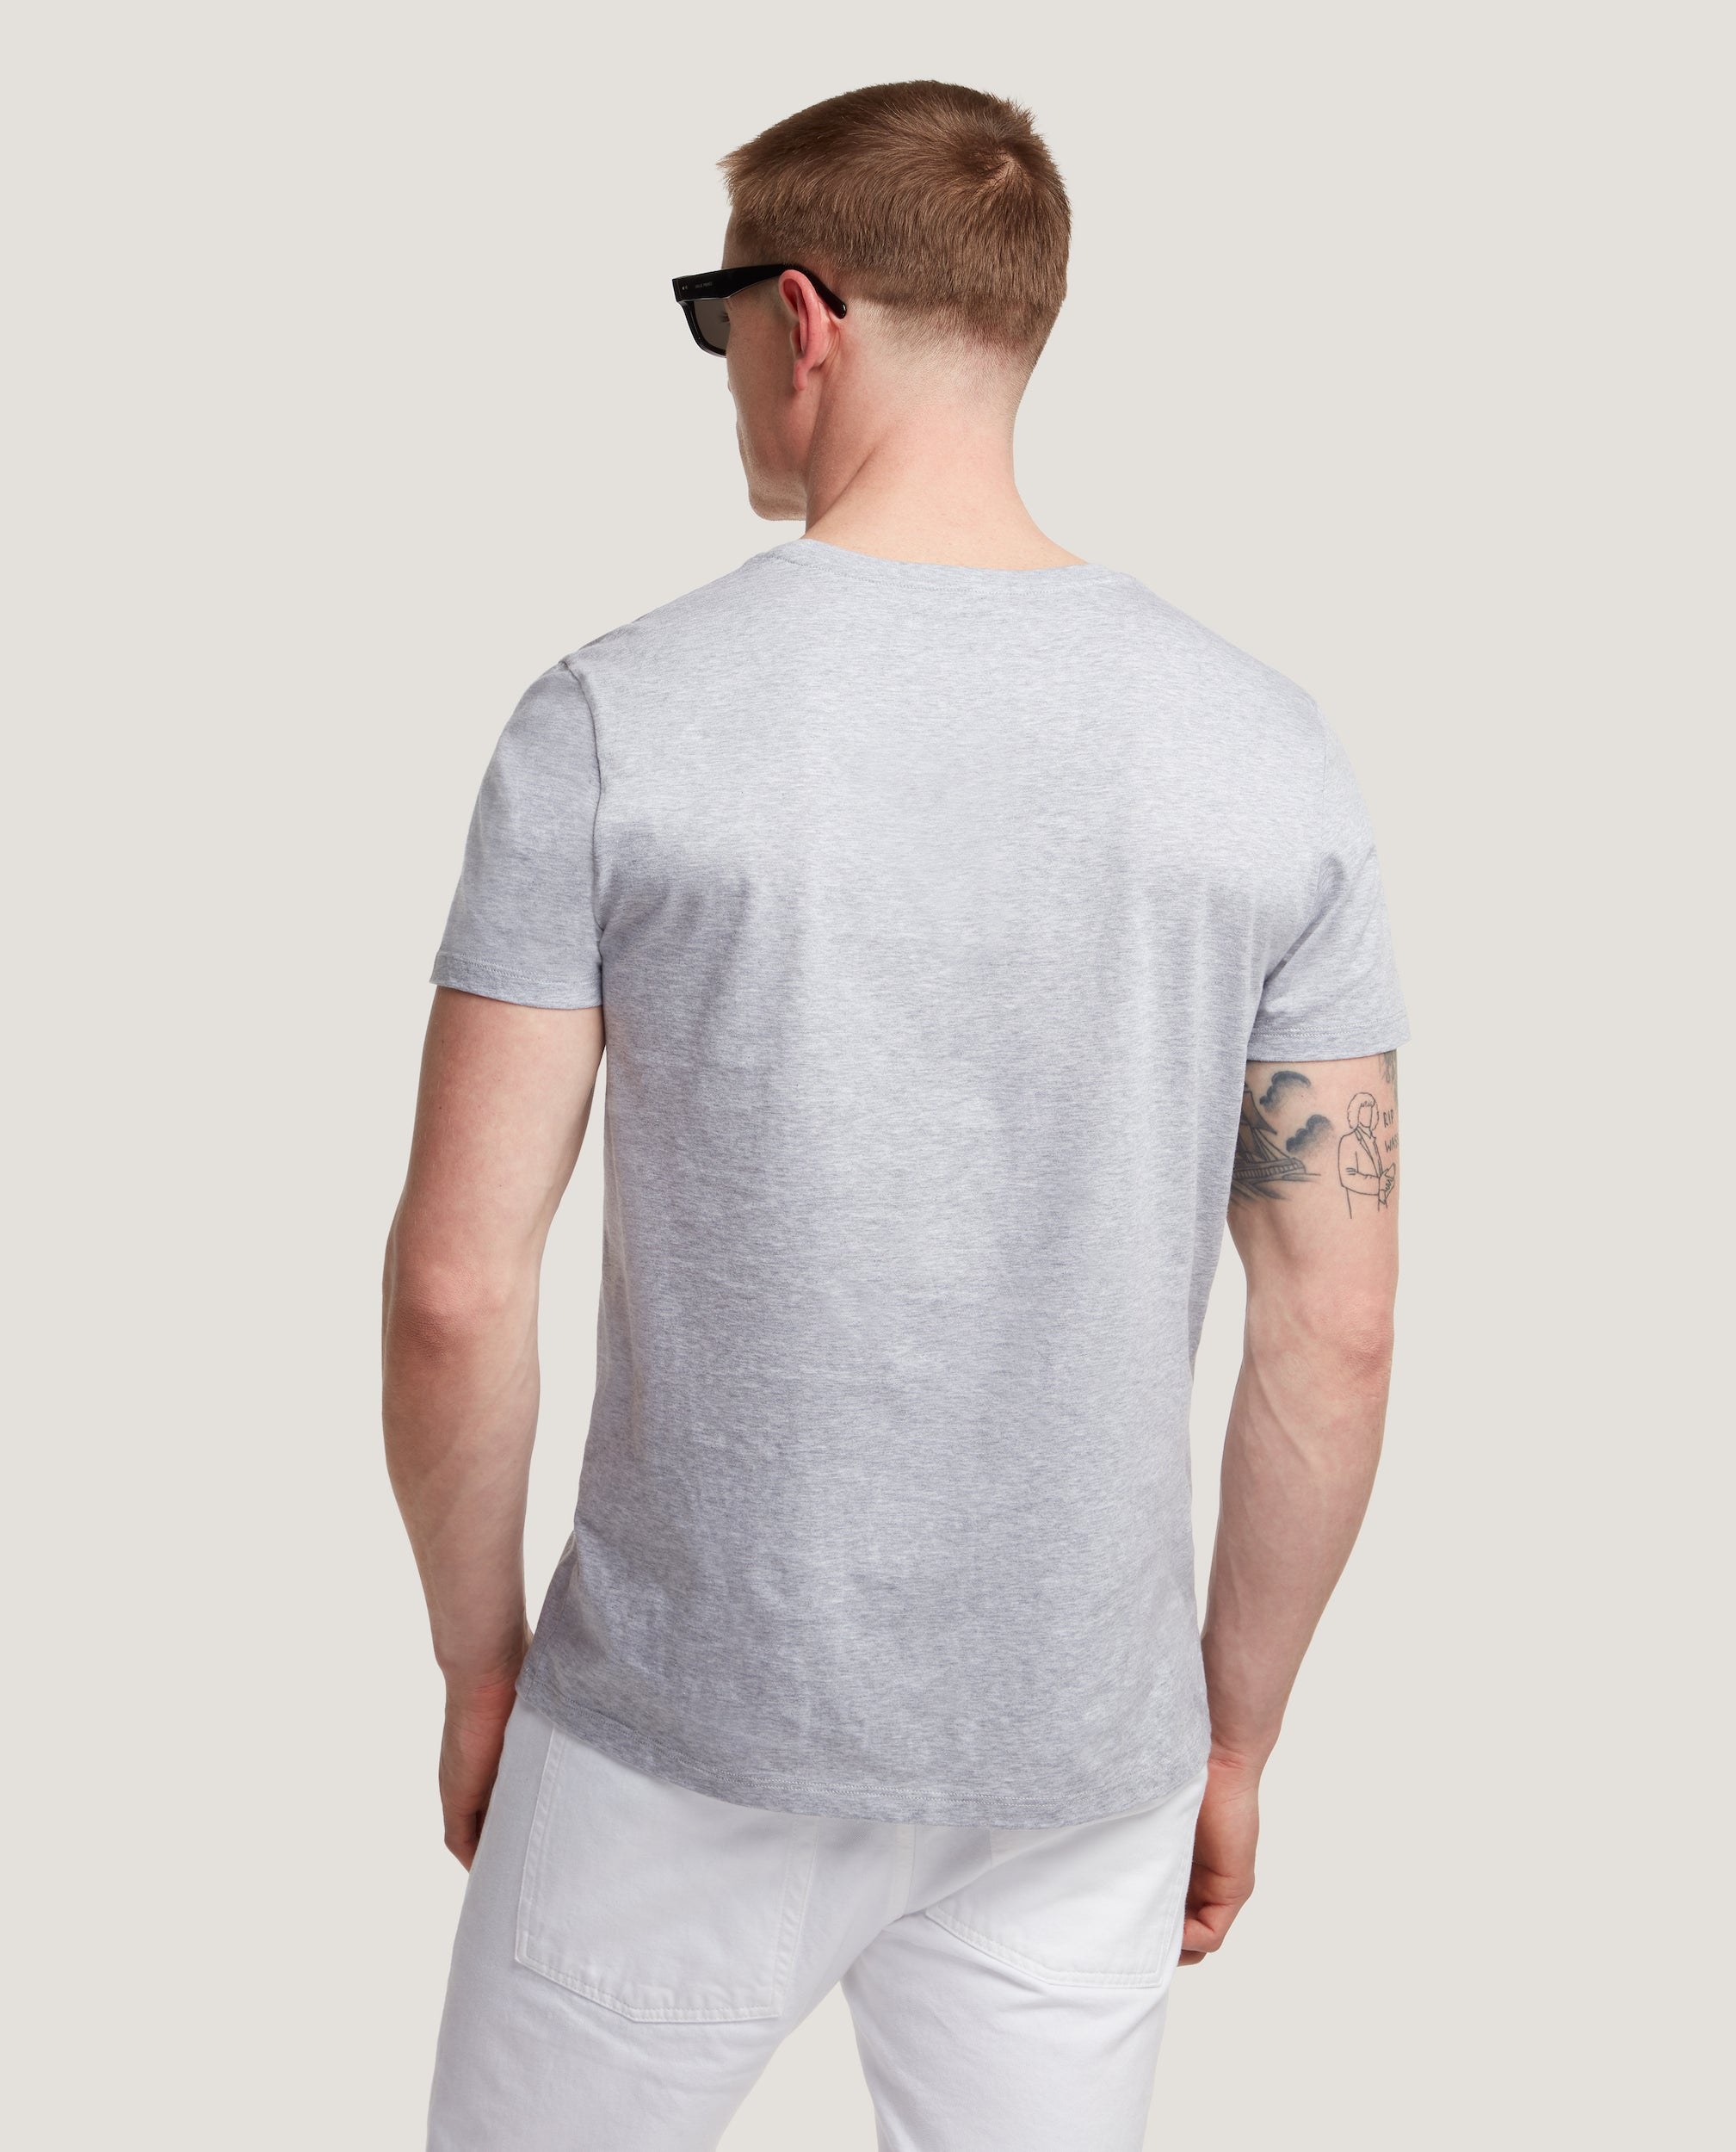 LOTHAR T-shirt | Cotton